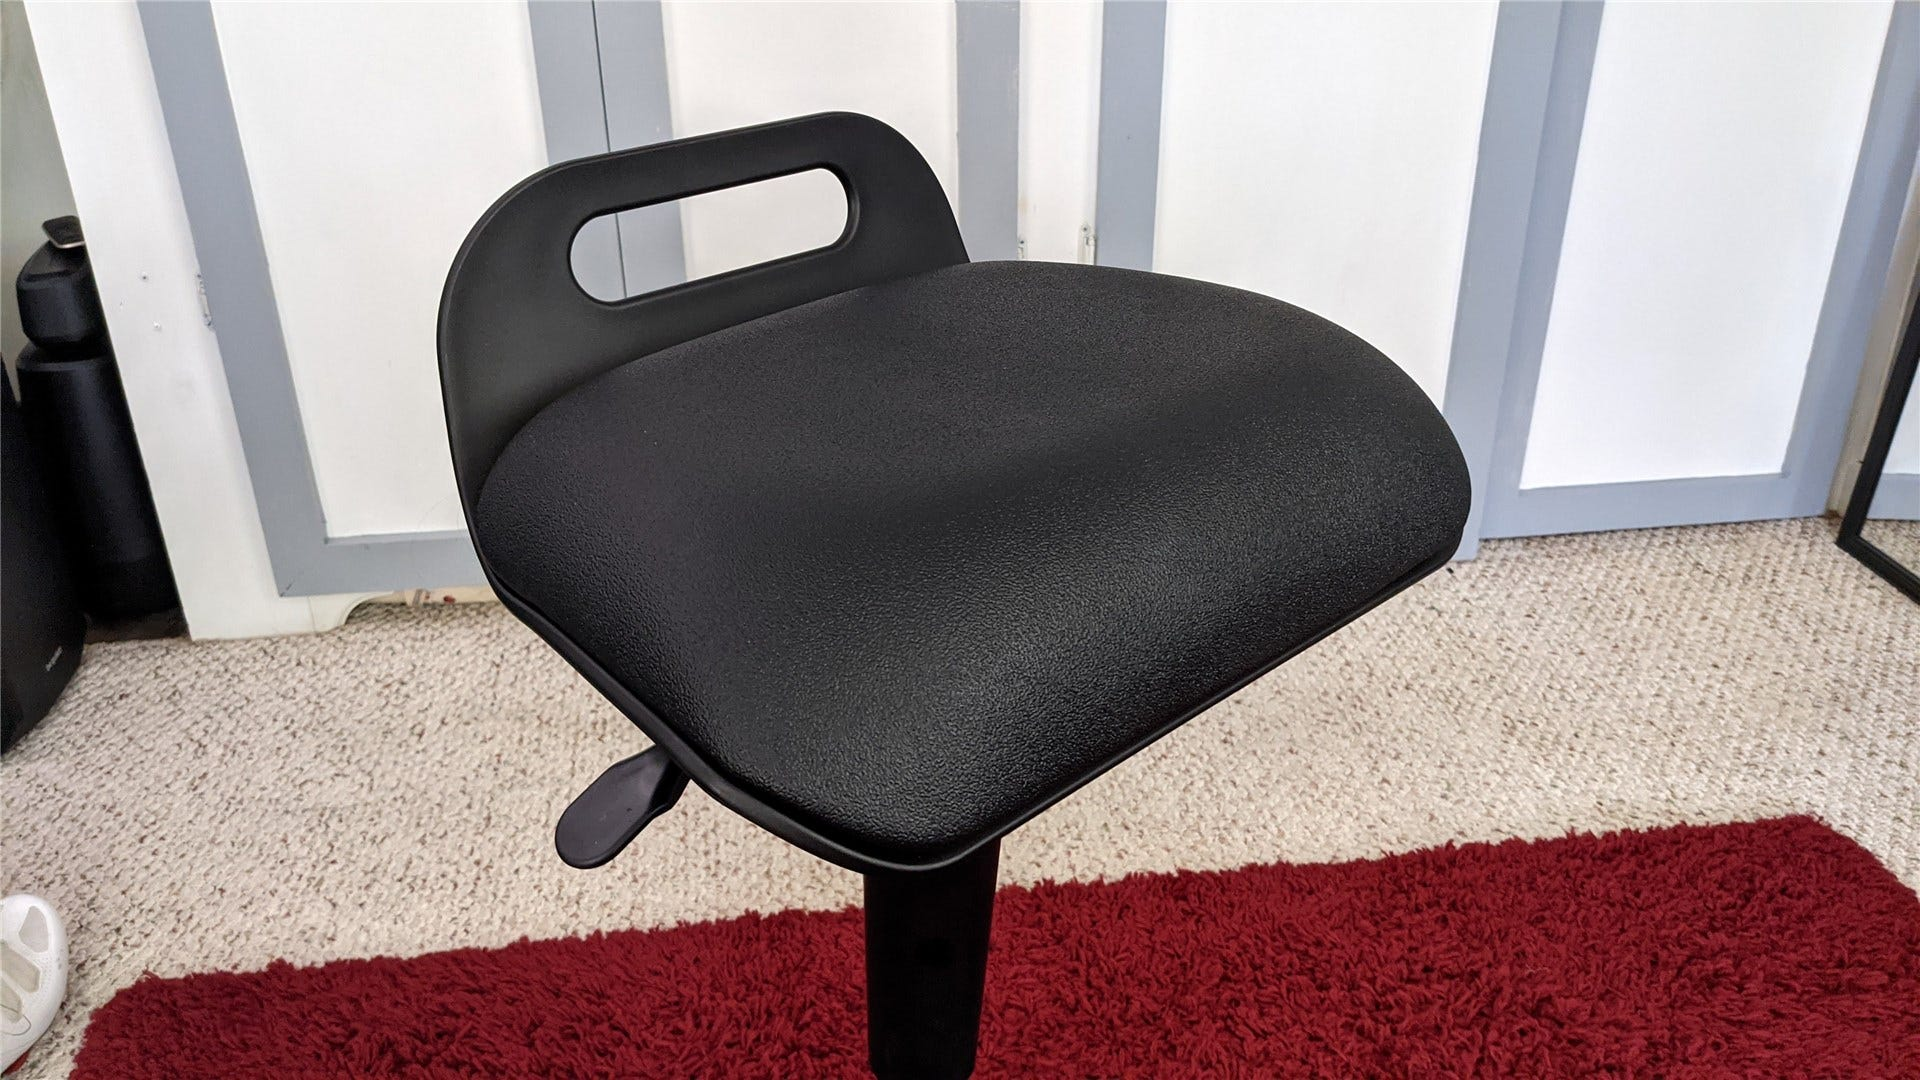 A closer look at the Active Seat seat